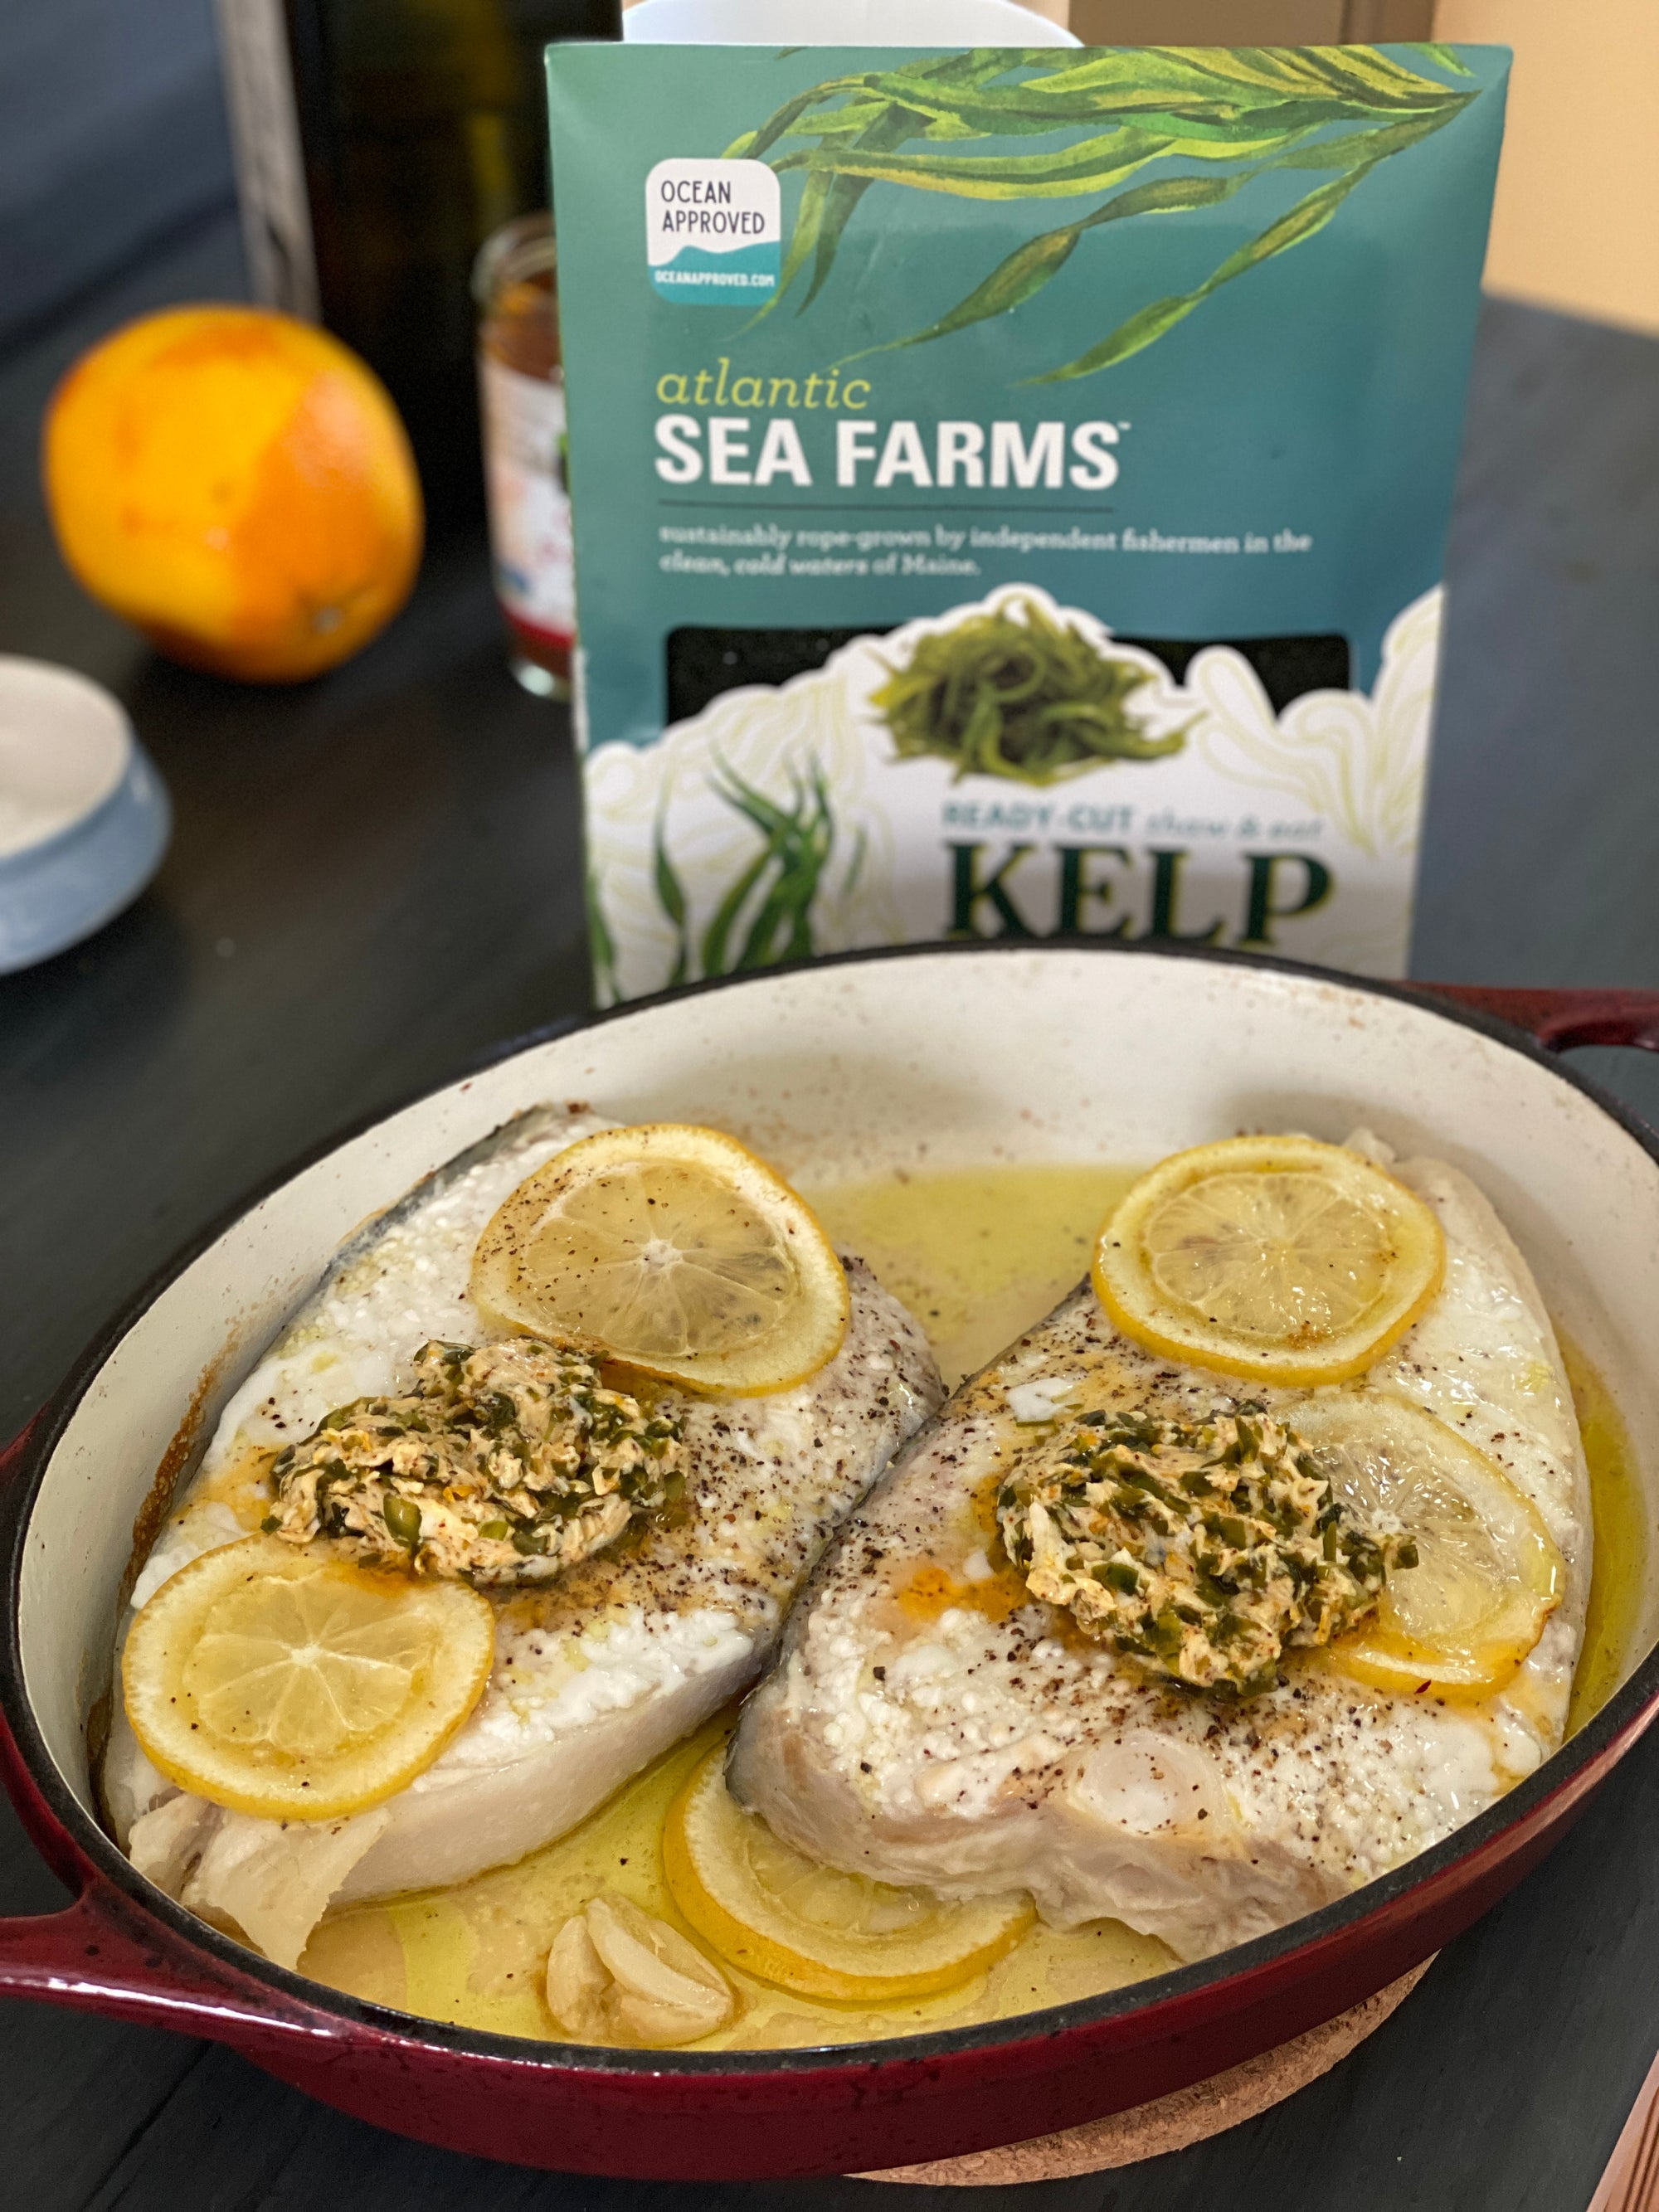 Halibut with Chili-Citrus-Kelp Butter Recipe by Mindy Fox